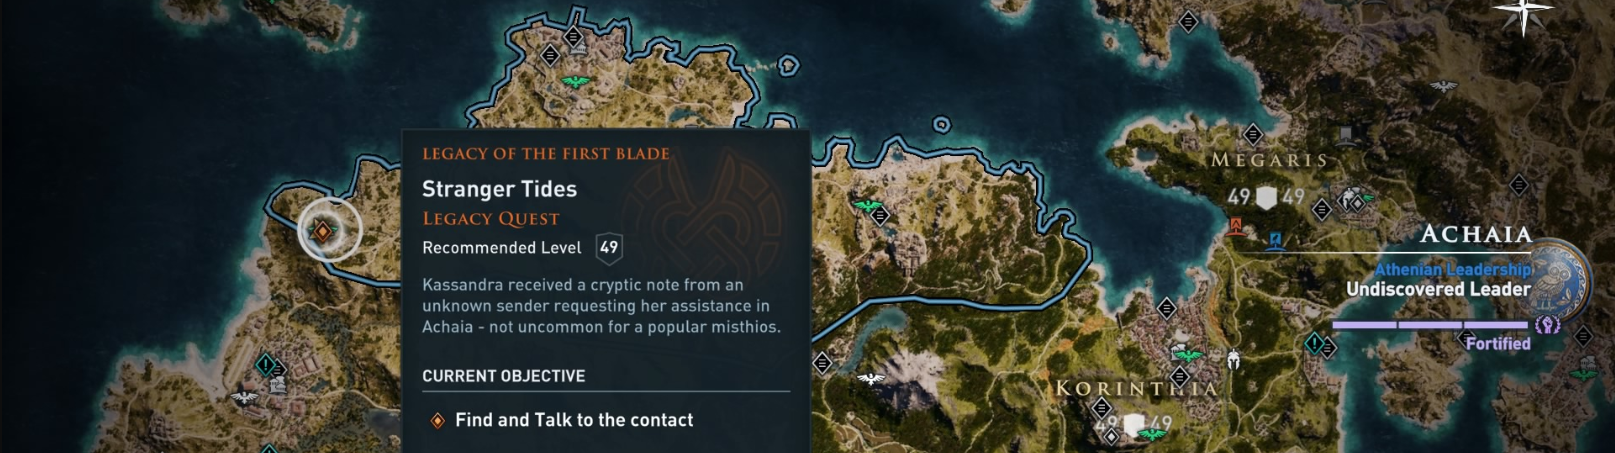 Map of Achaia displaying the second quest chain of the Legacy of the First Blade